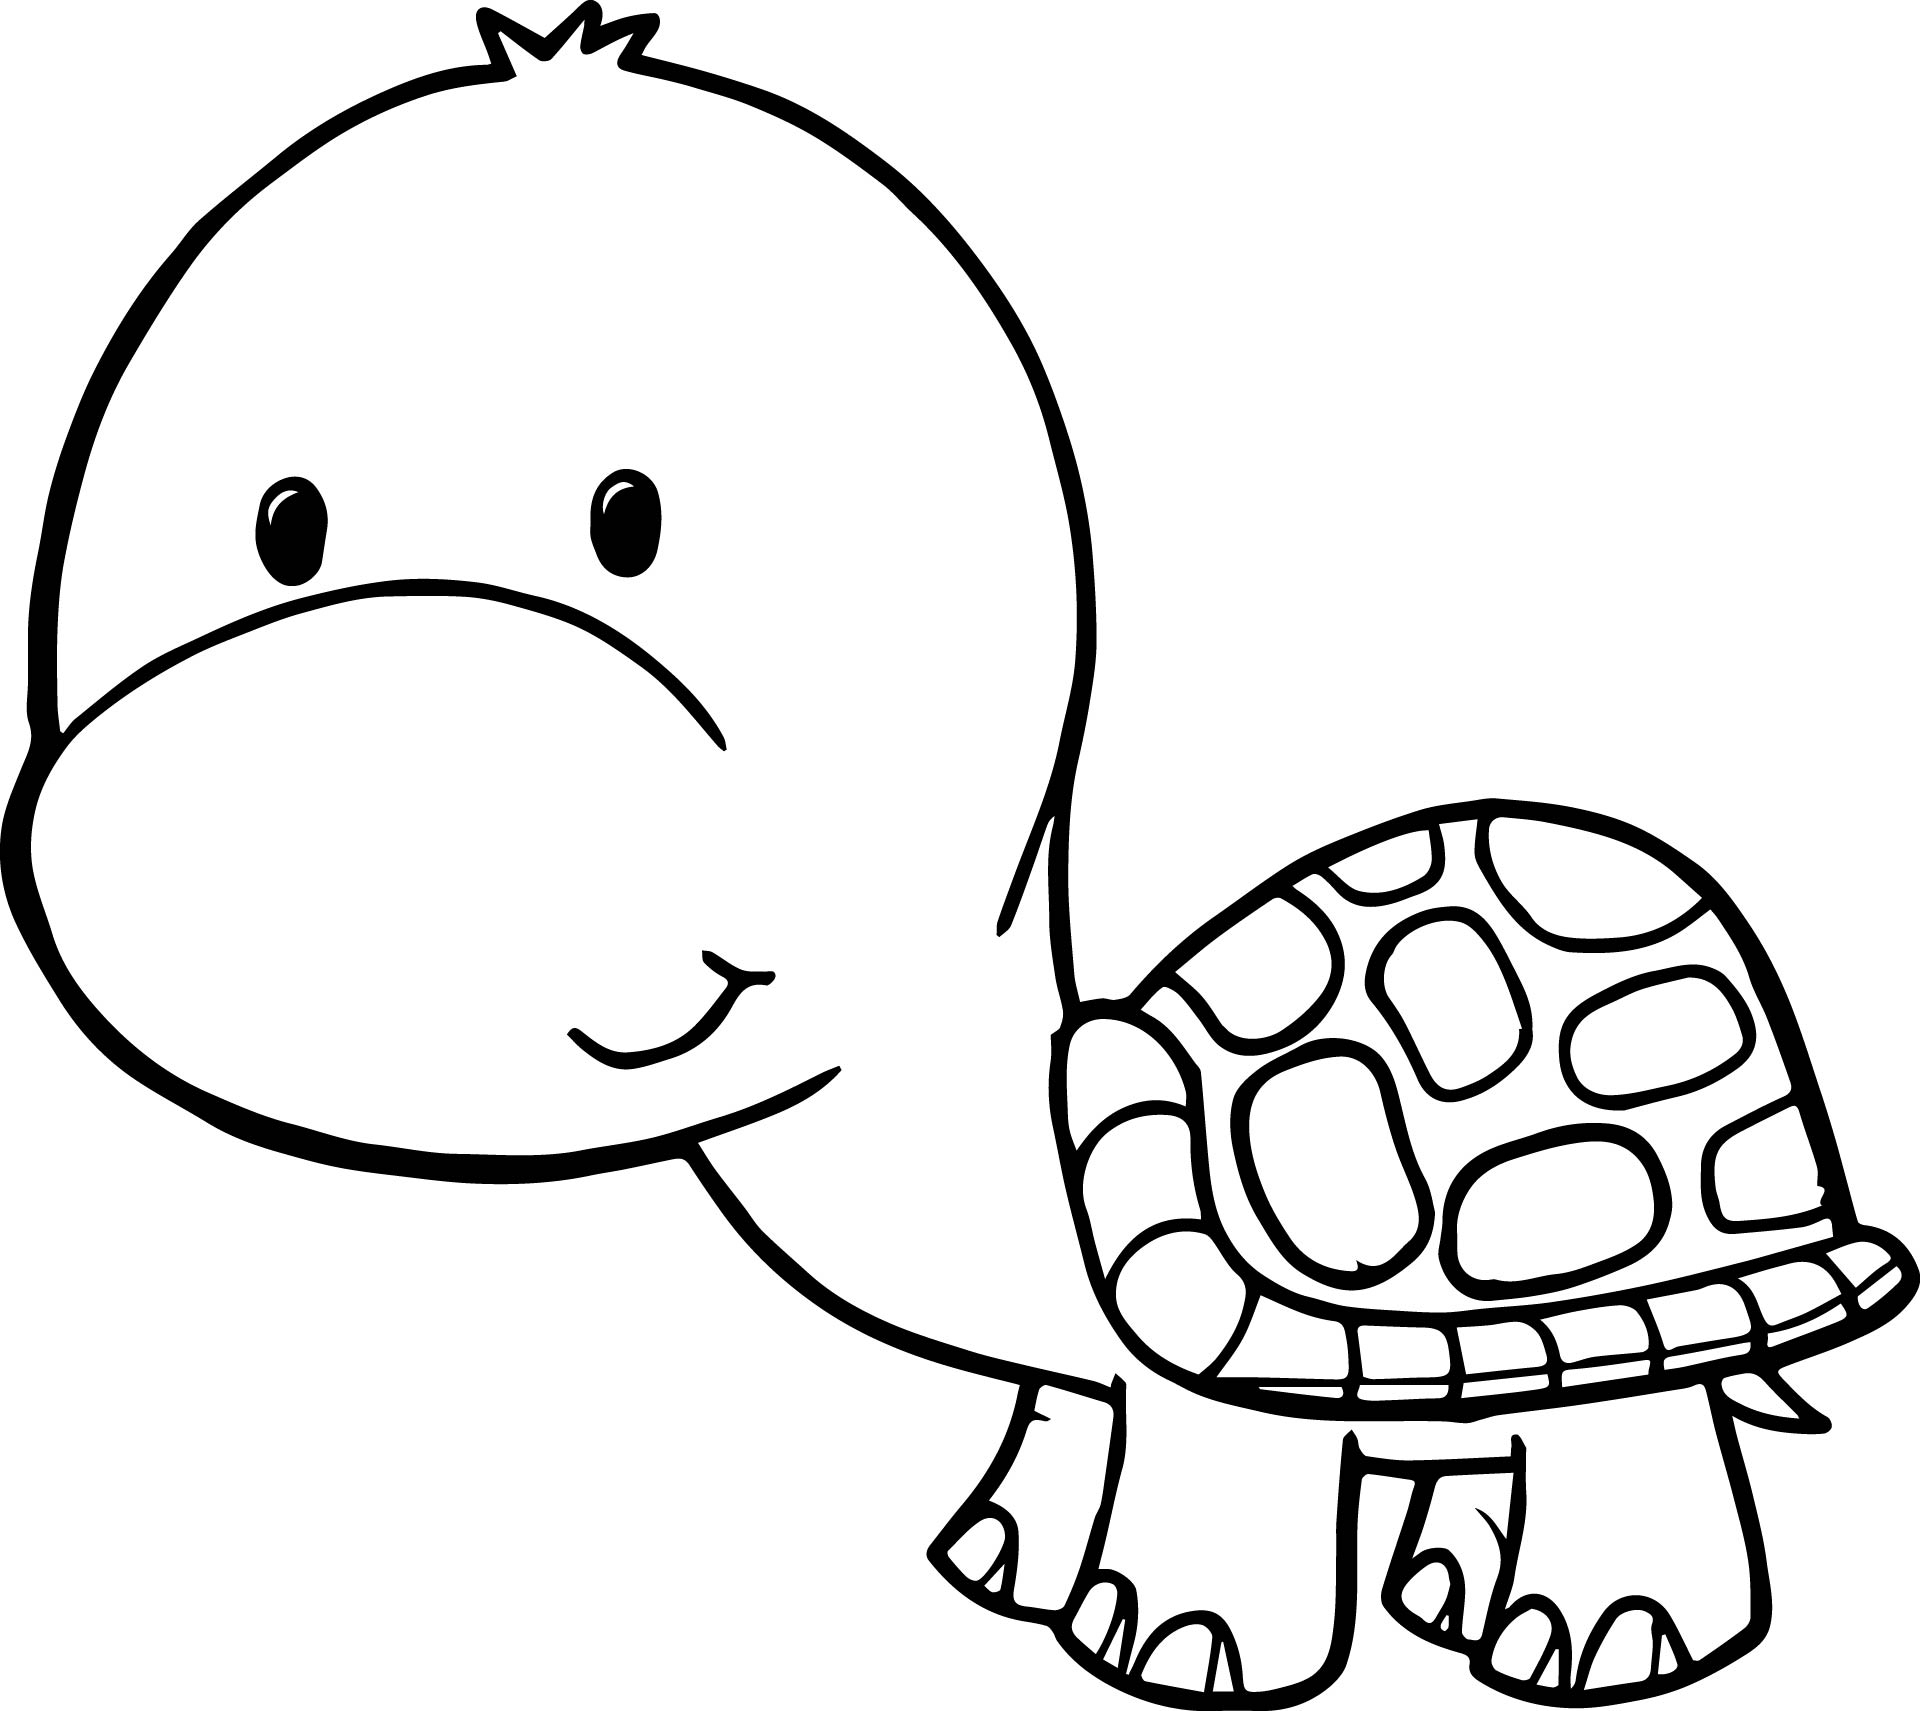 turtle cartoon coloring pages - photo#5